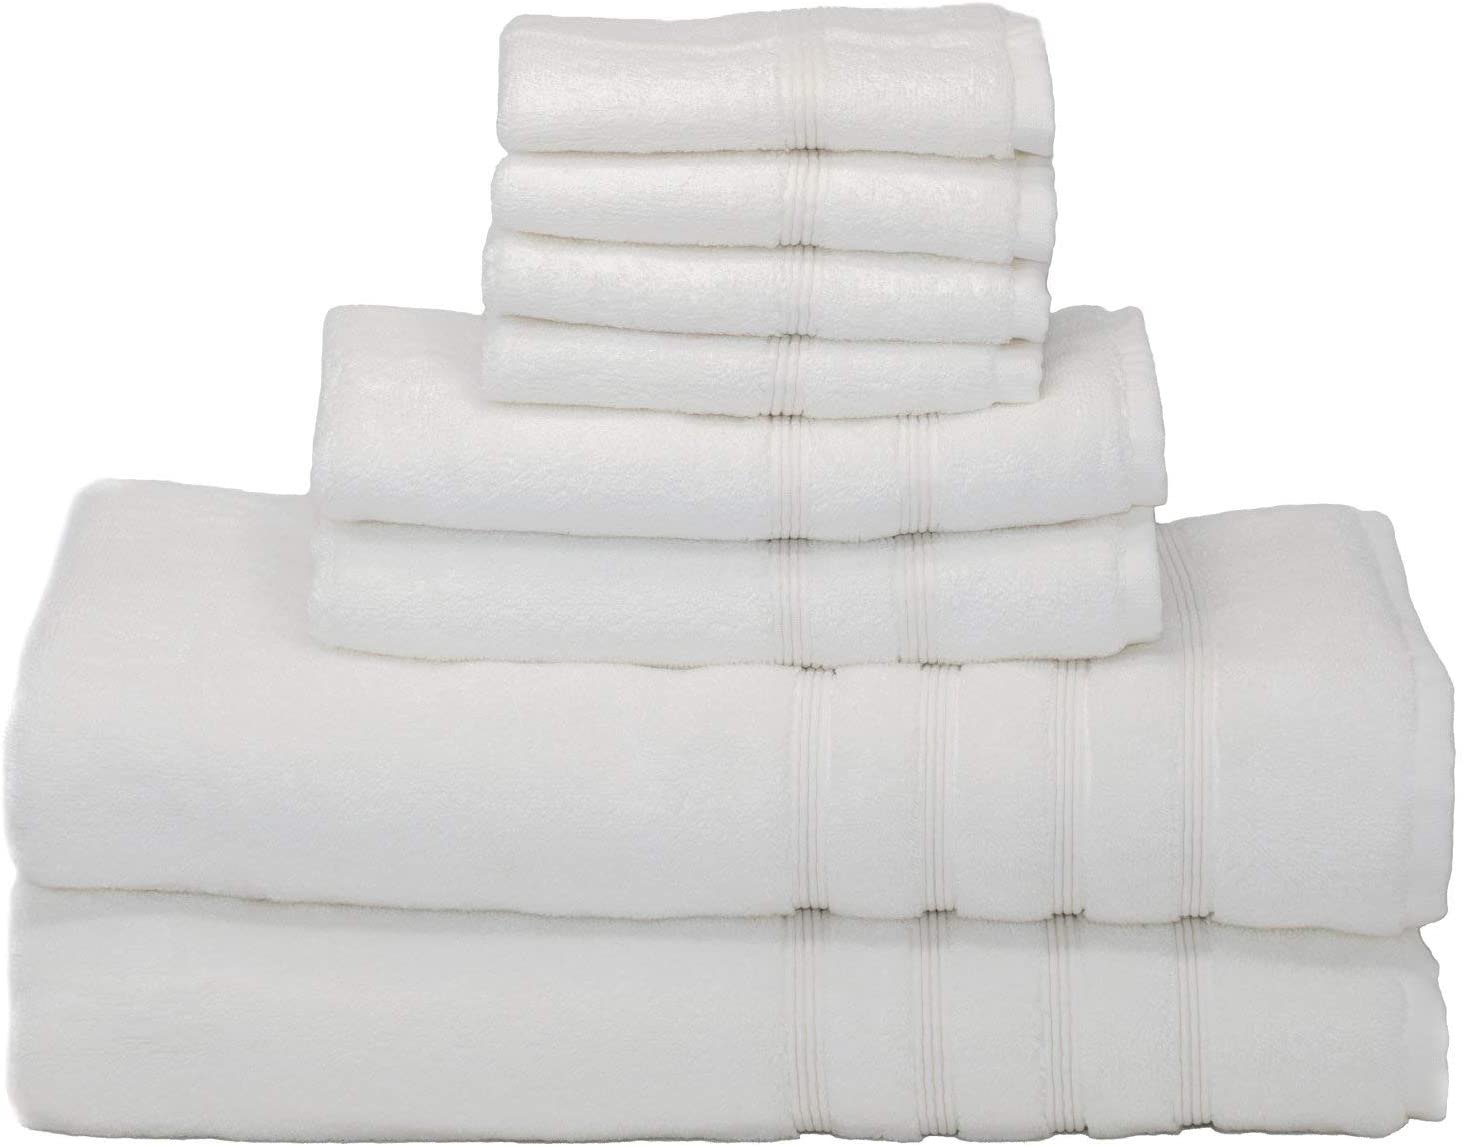 MOSOBAM 700 GSM Luxury Bamboo 8pc Raleigh Mall Extra Whit Large Set We OFFer at cheap prices Bathroom